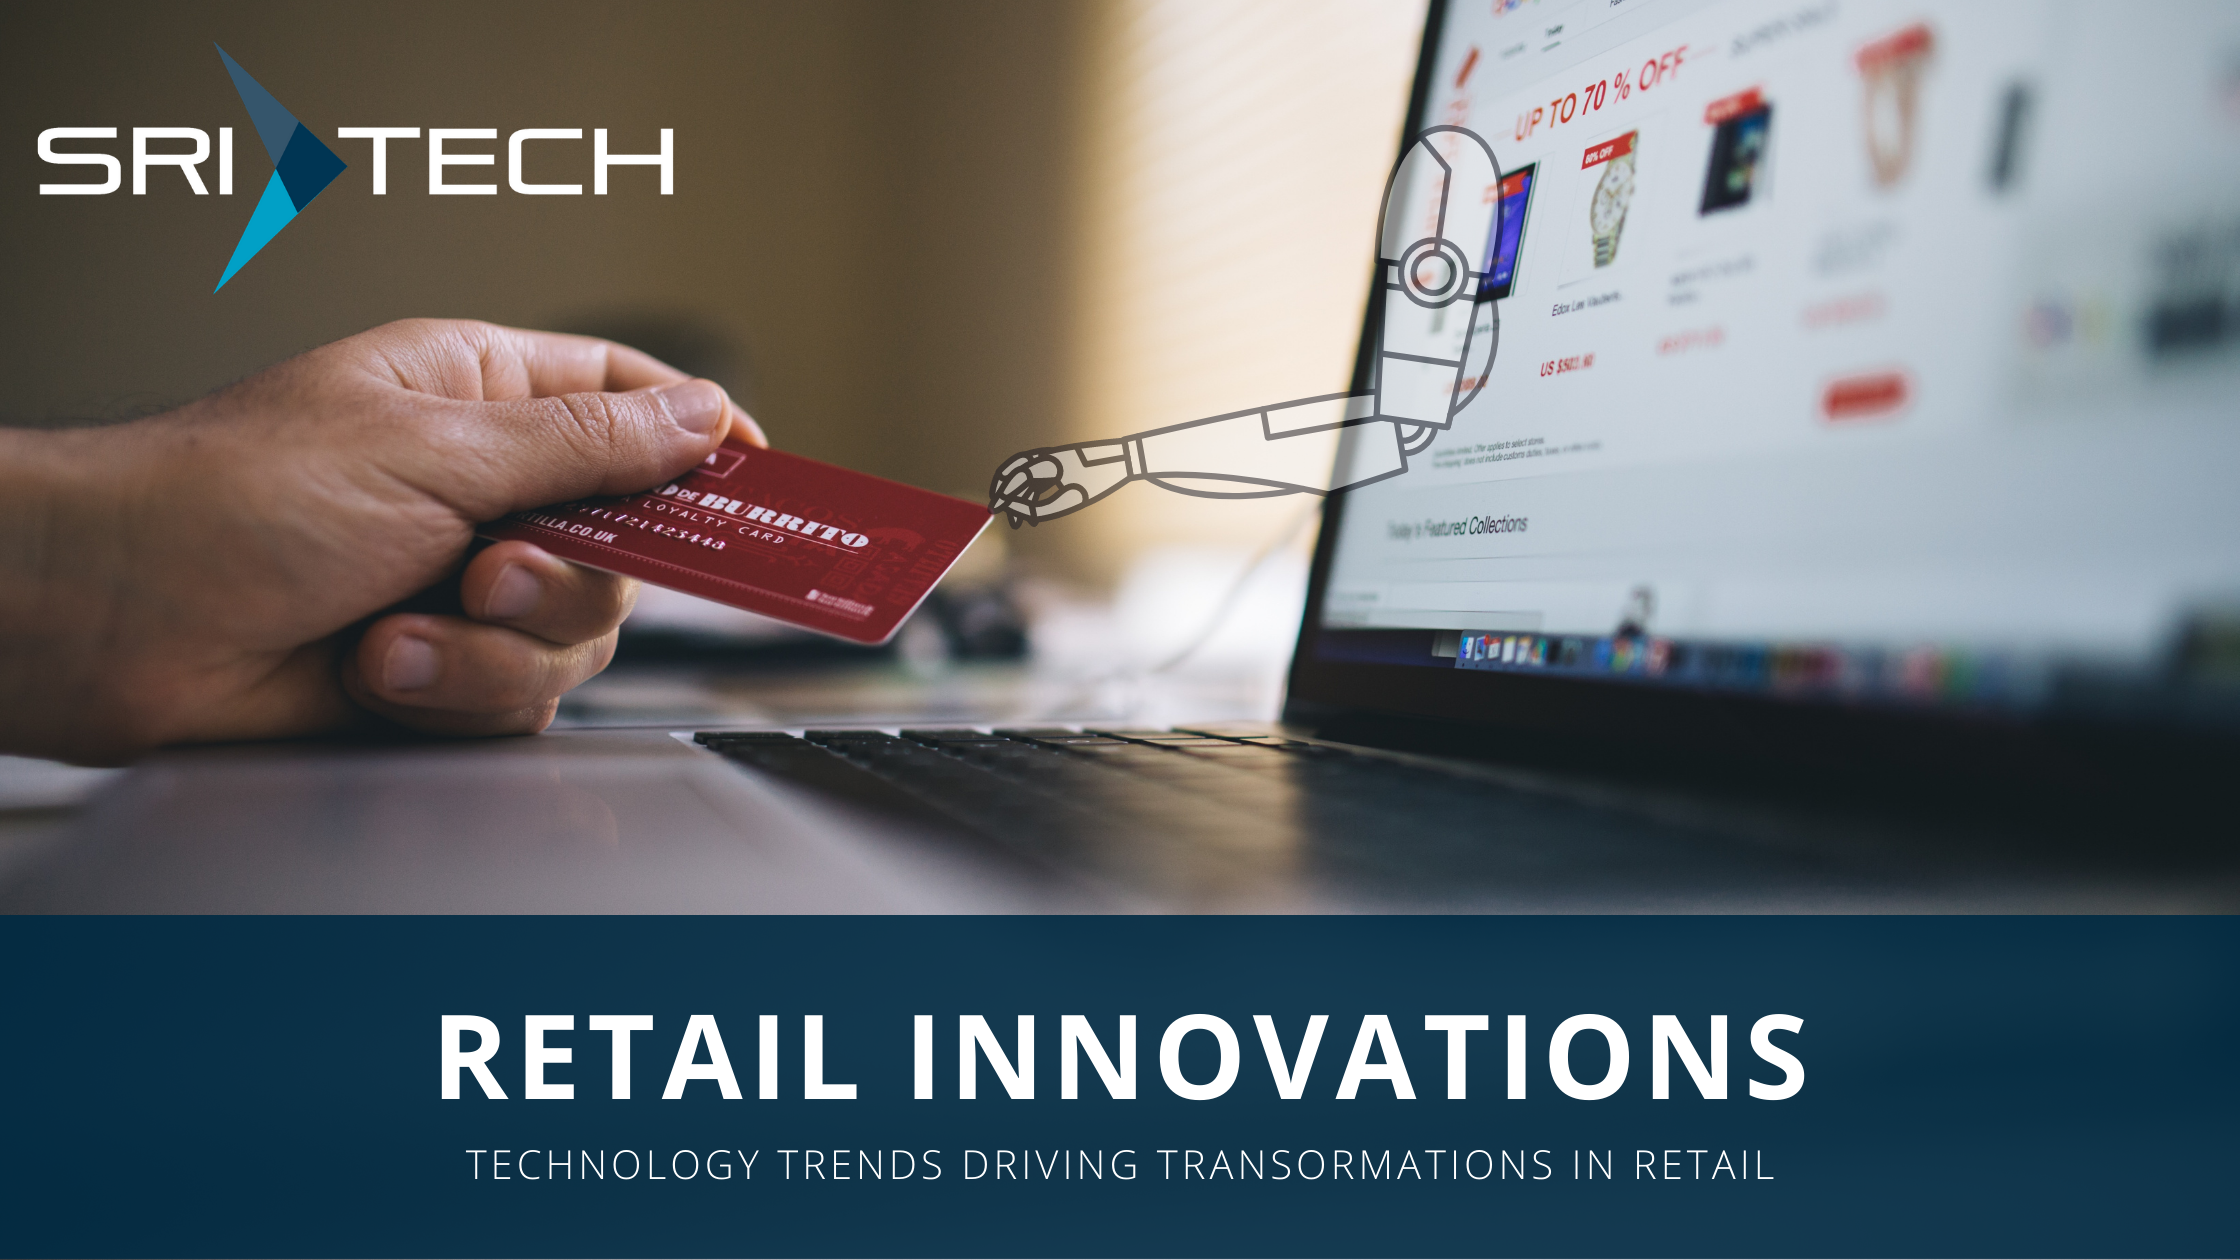 Technology Transformation and Innovations in Retail Industry